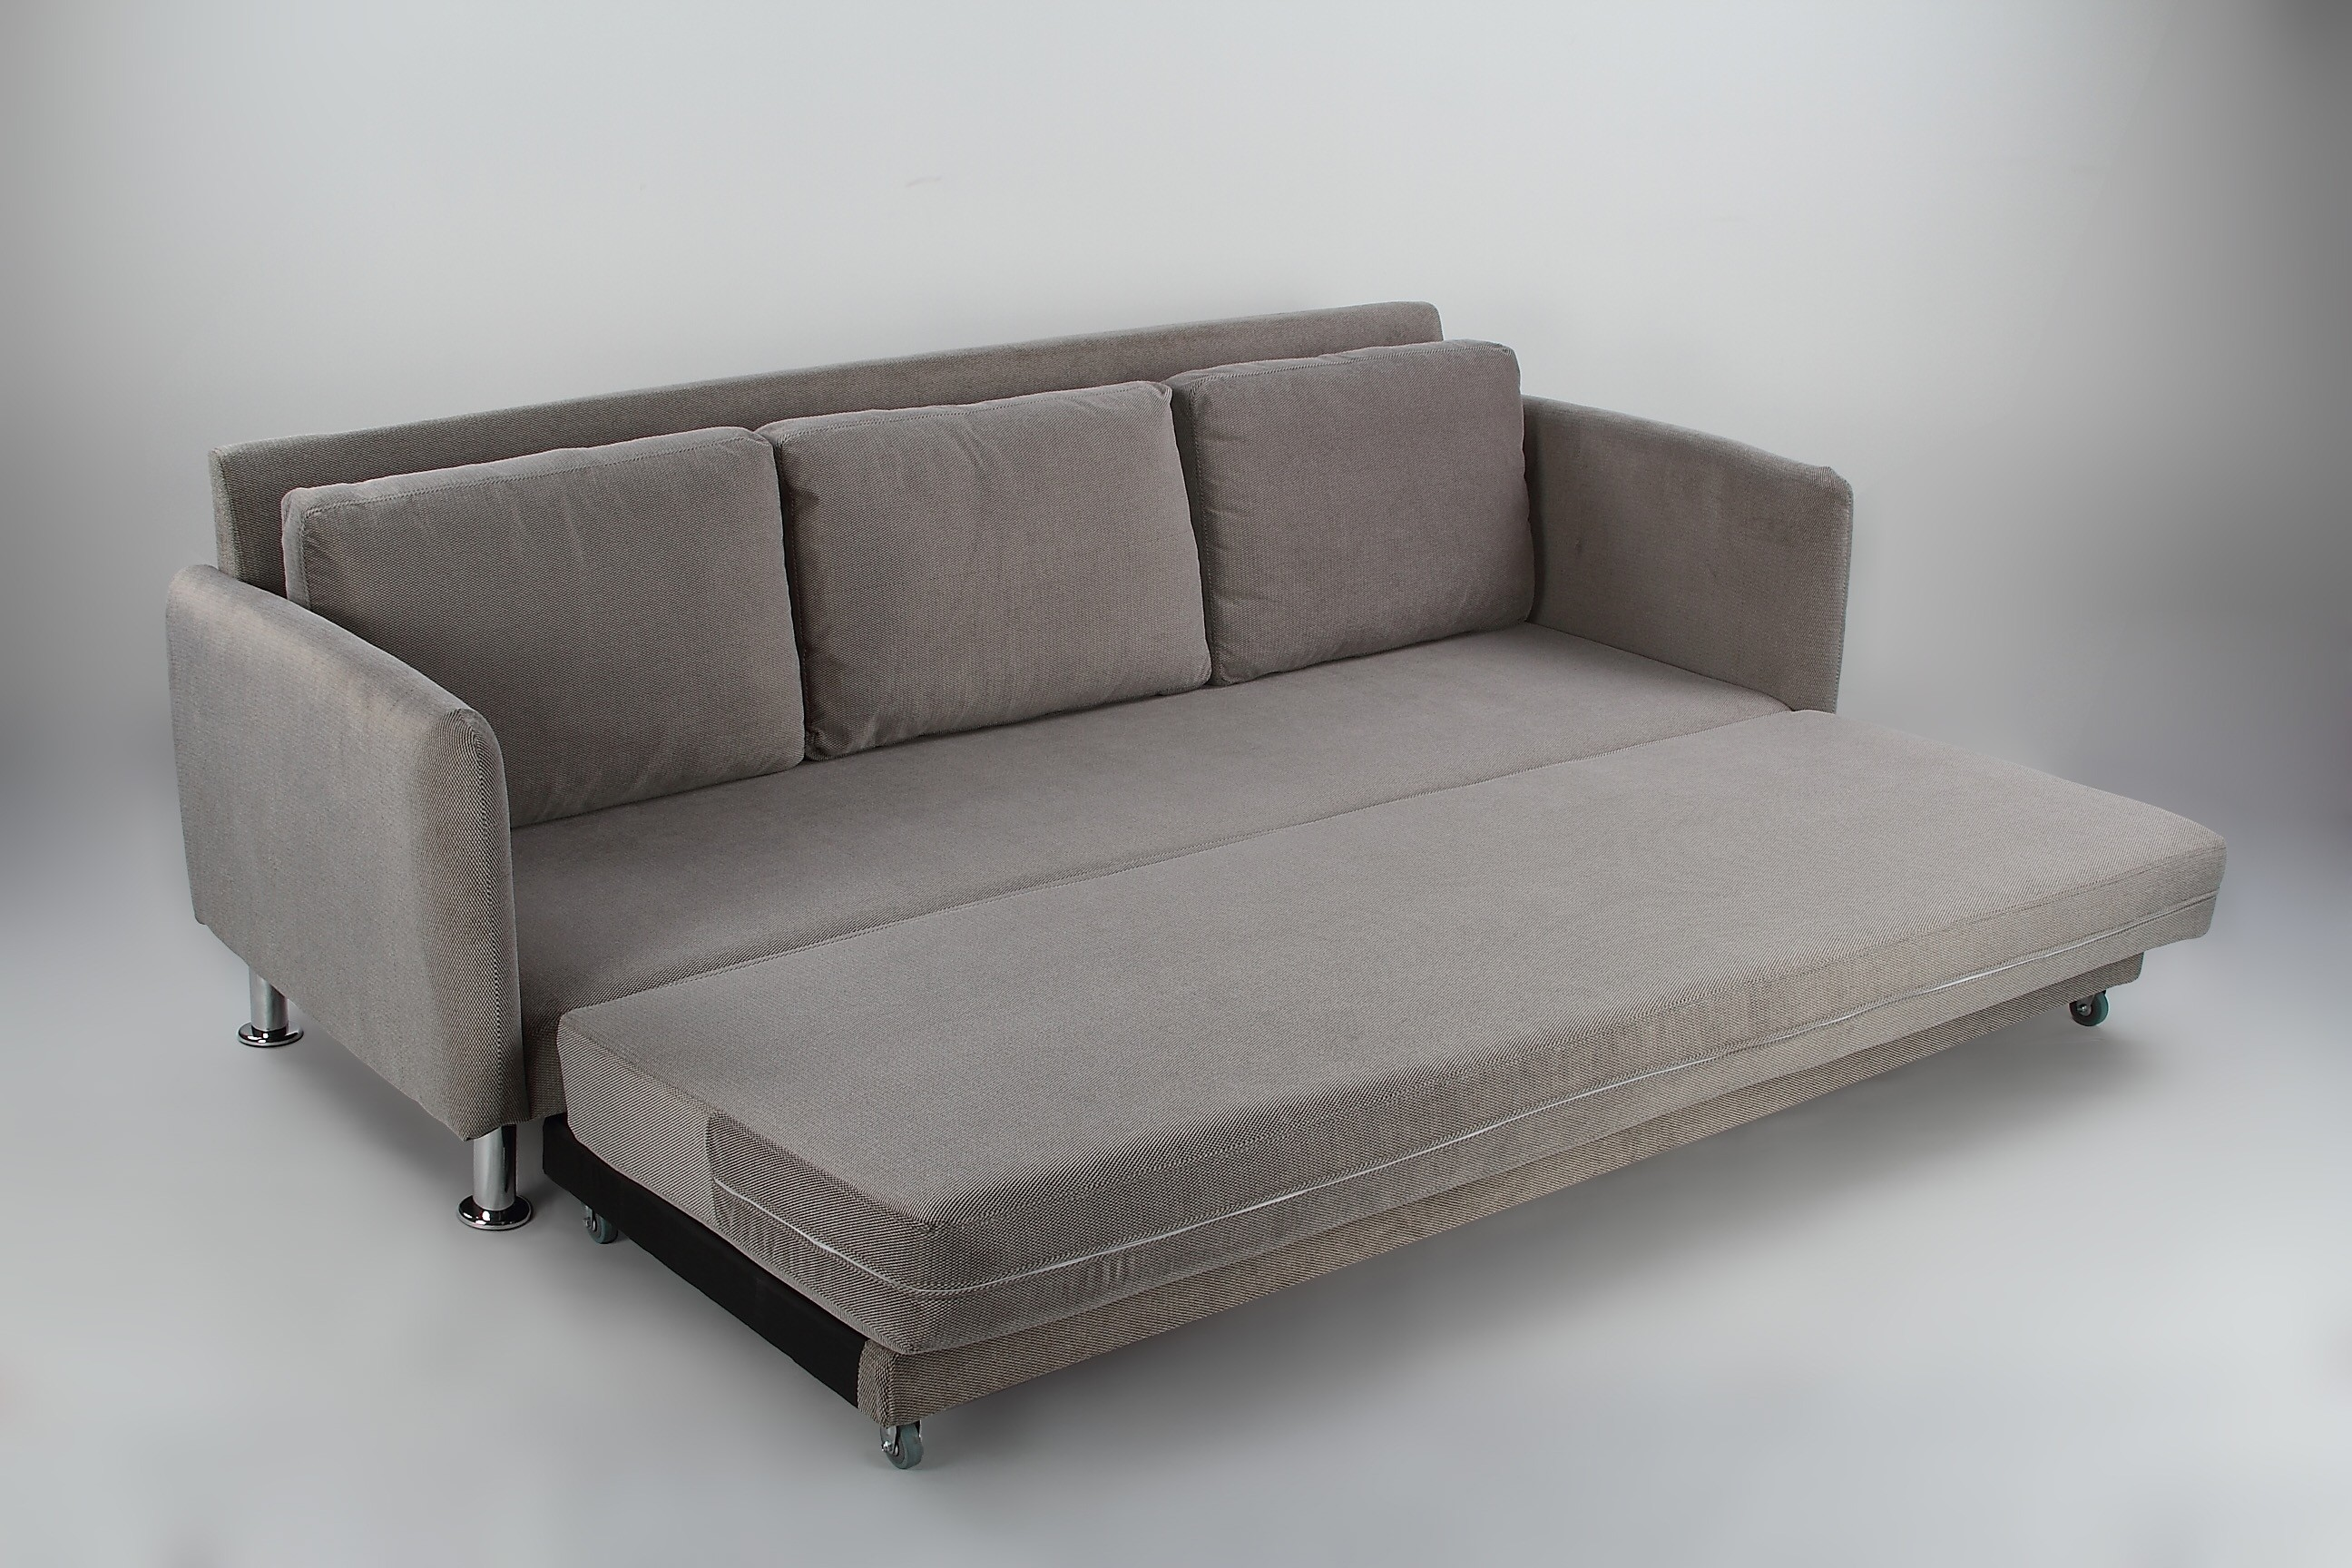 cozy 3 seater grey pull out sofa bed furniture   home